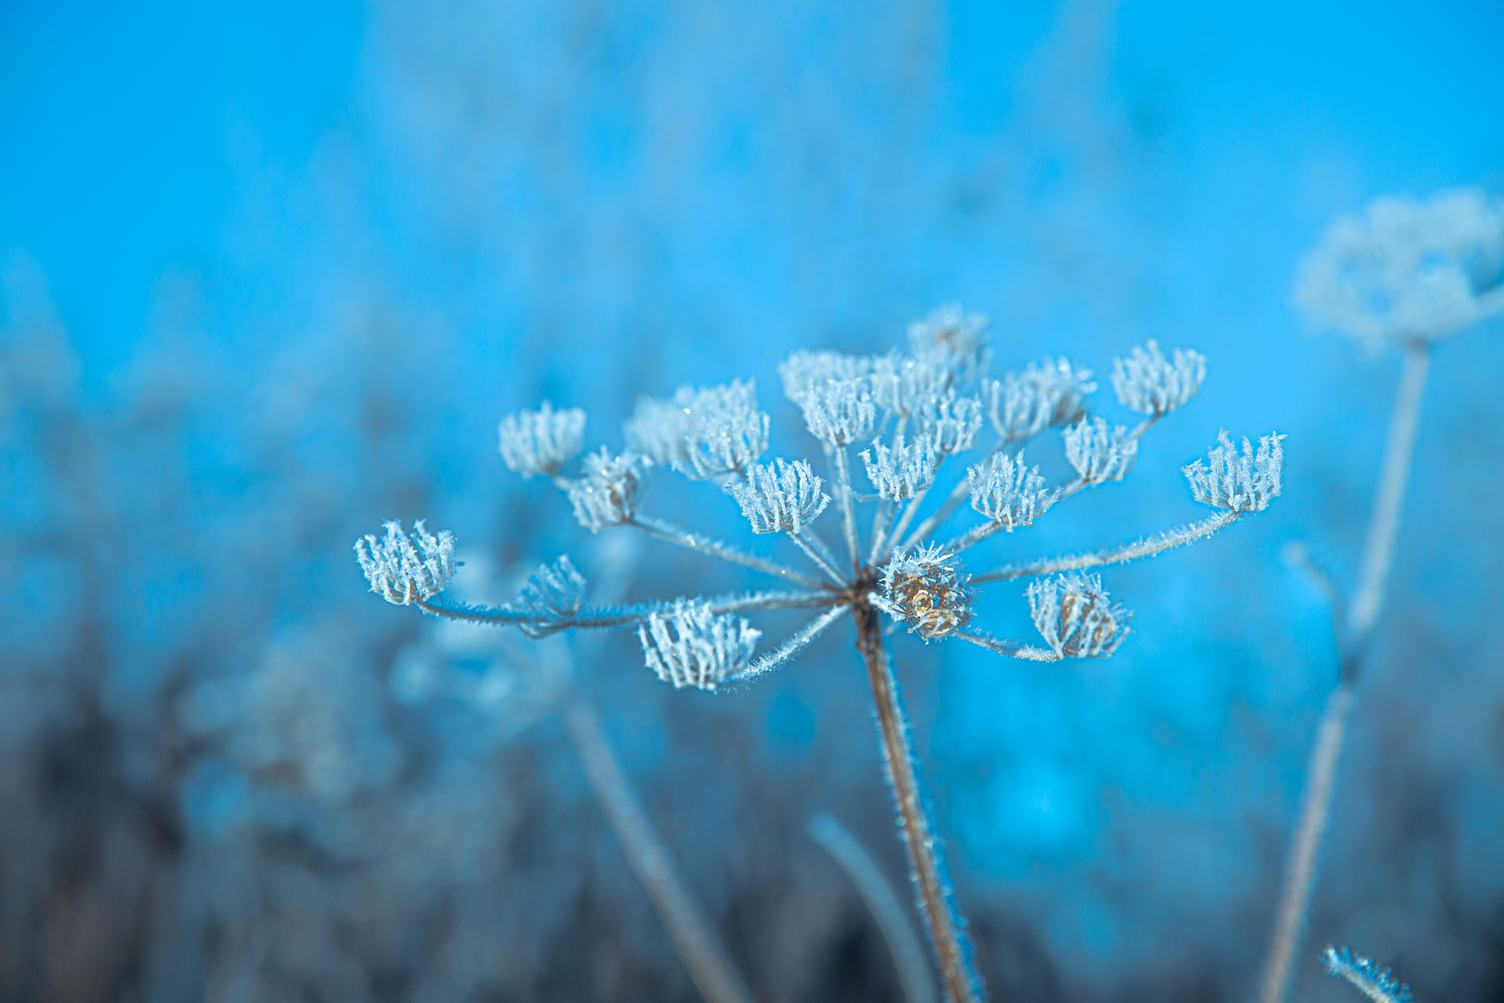 Close up of Frozen Umbellate Plant